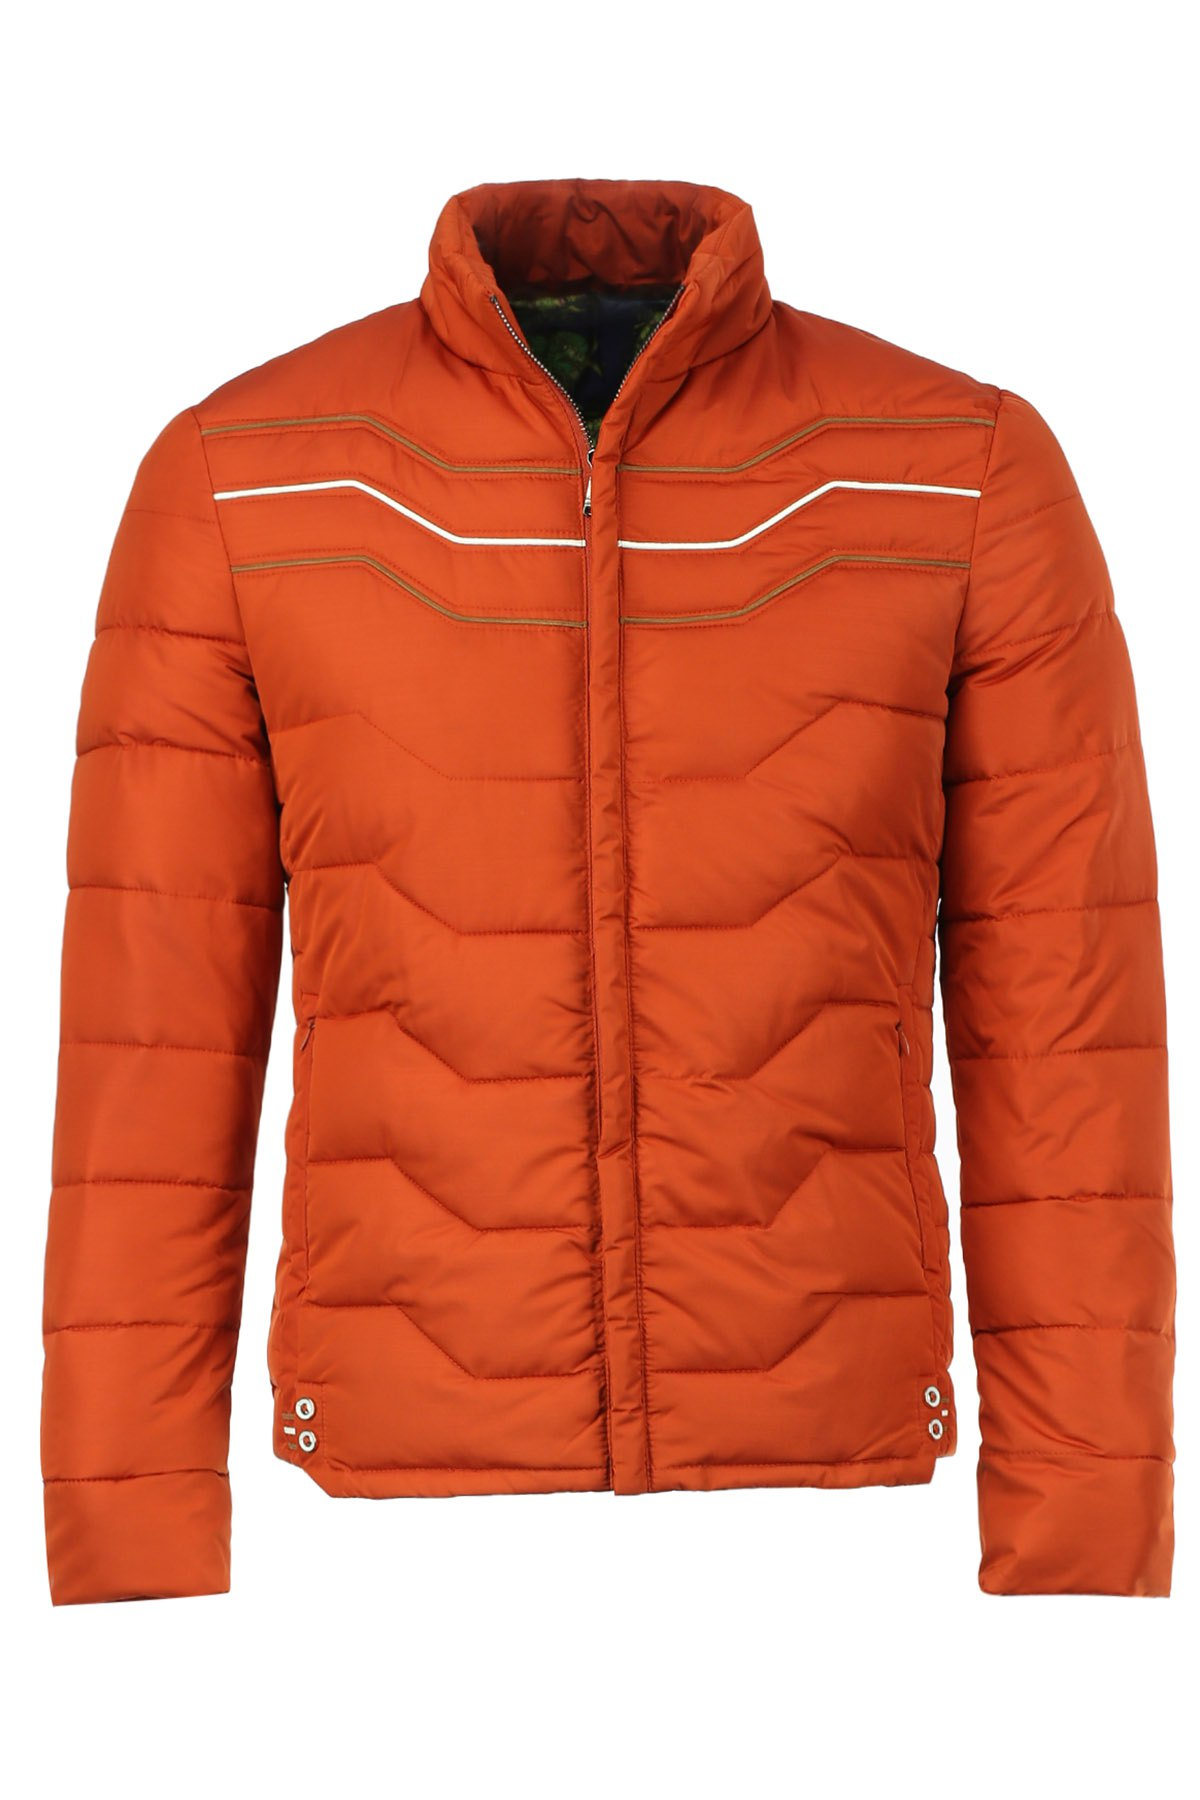 Slimming Stand Collar Zipper Pocket Color Block Wavy Stripes Long Sleeves Men's Padded Coat - ORANGE RED L